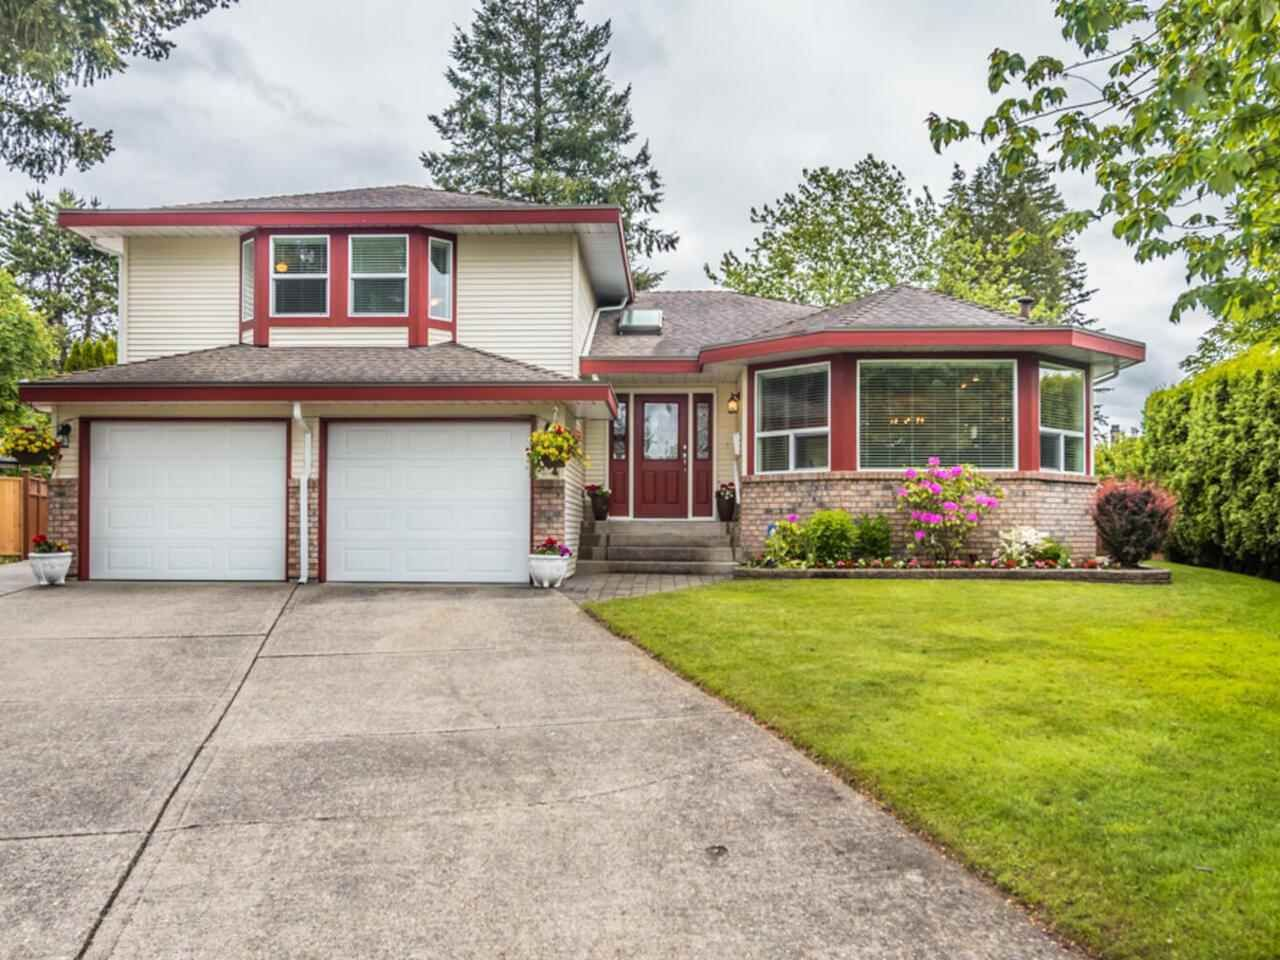 """Main Photo: 3394 198A Street in Langley: Brookswood Langley House for sale in """"Meadowbrook"""" : MLS®# R2586266"""